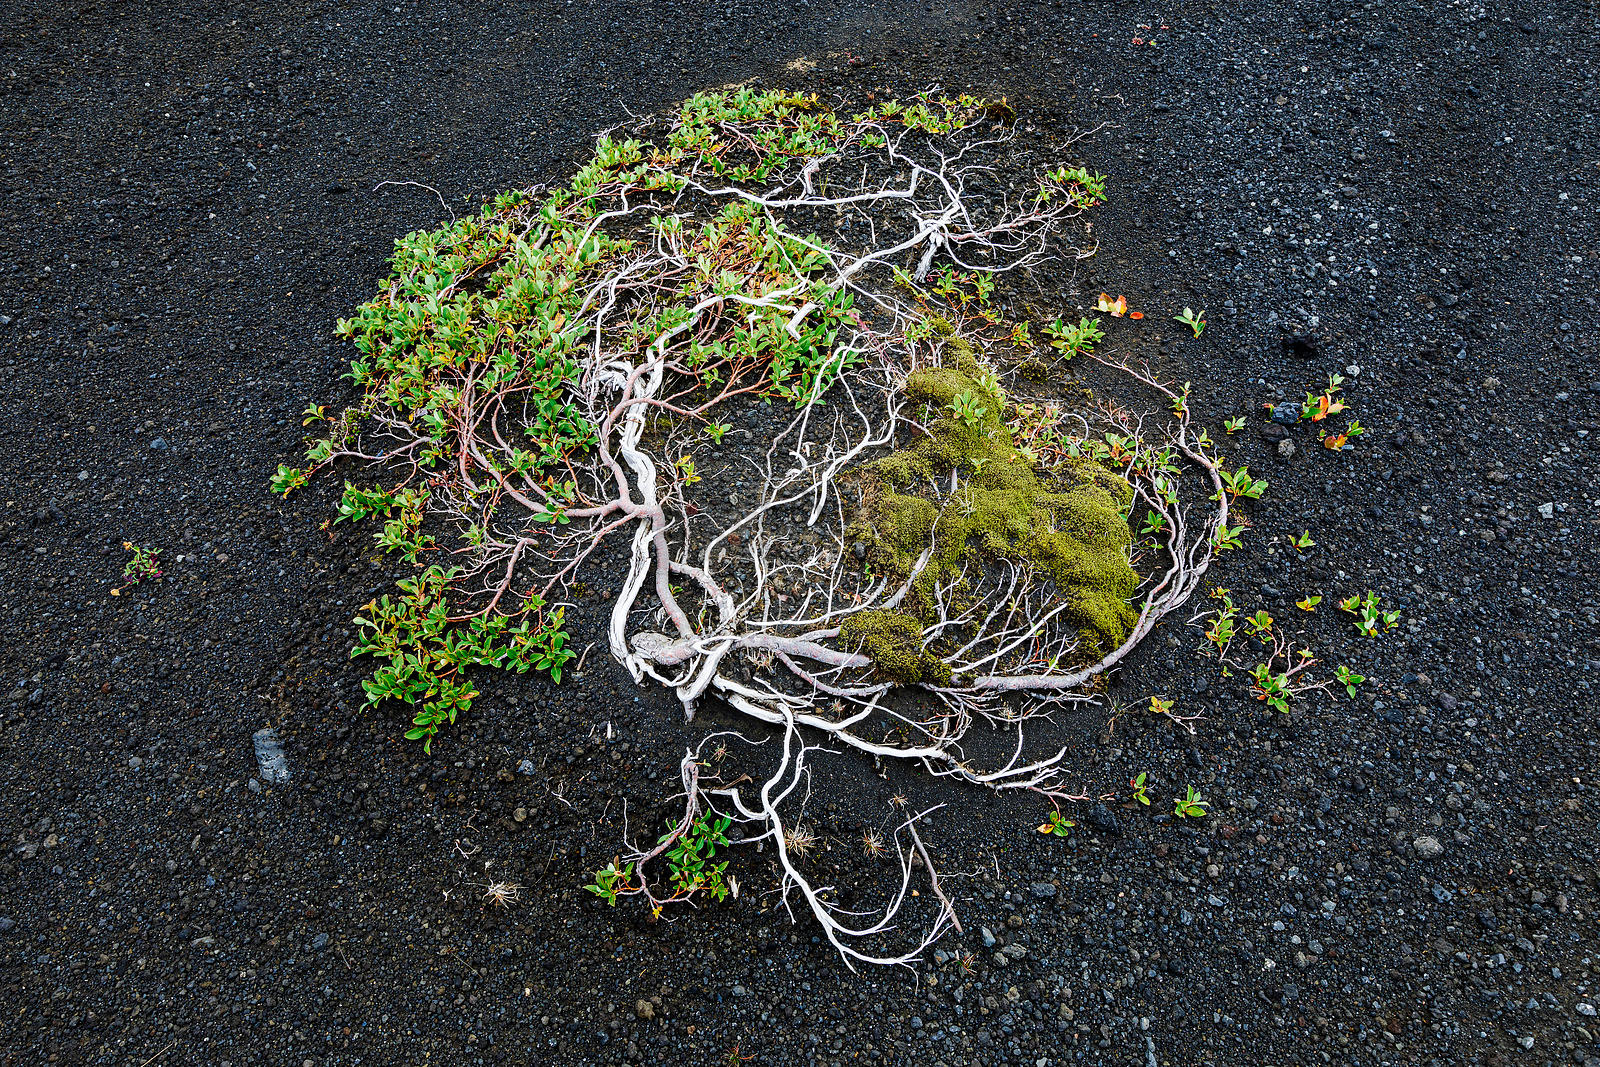 Plant Growing in Volcanic Soil